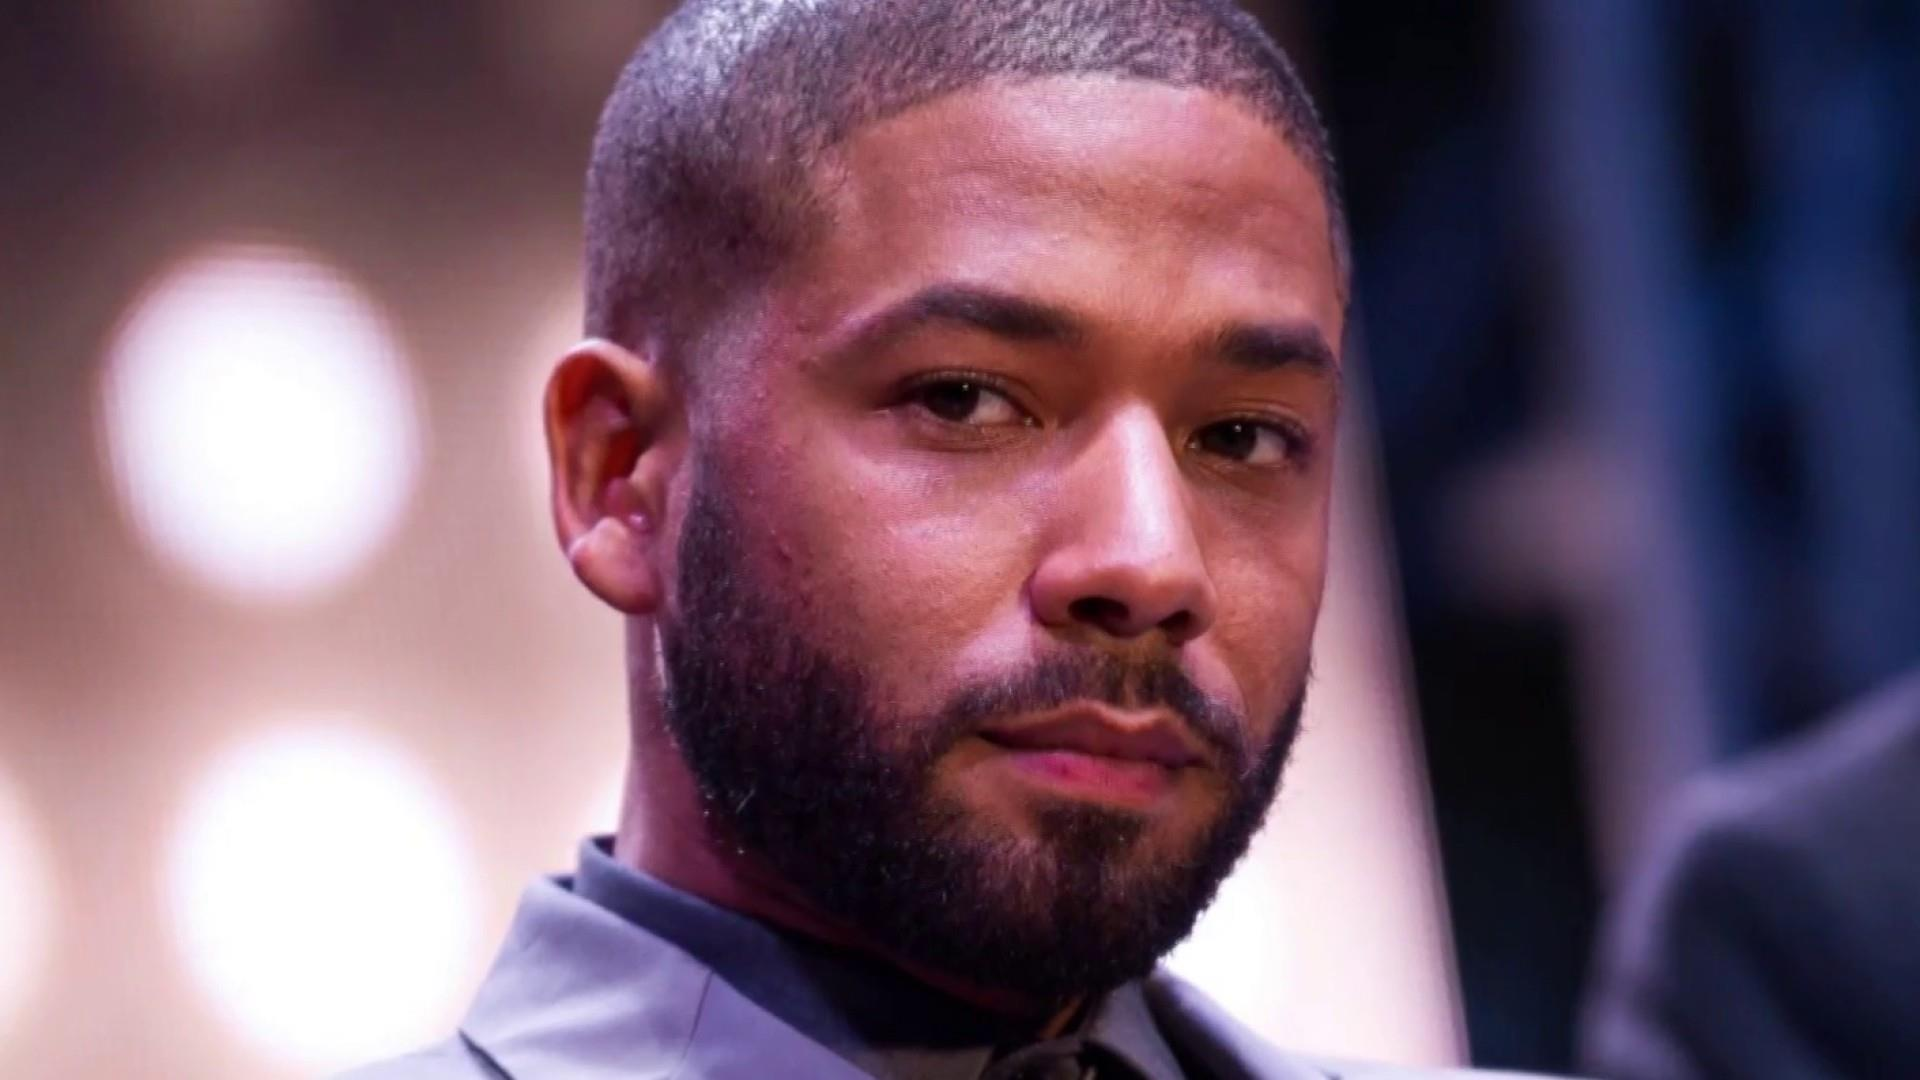 Jussie Smollett could face criminal charges, according to law enforcement sources